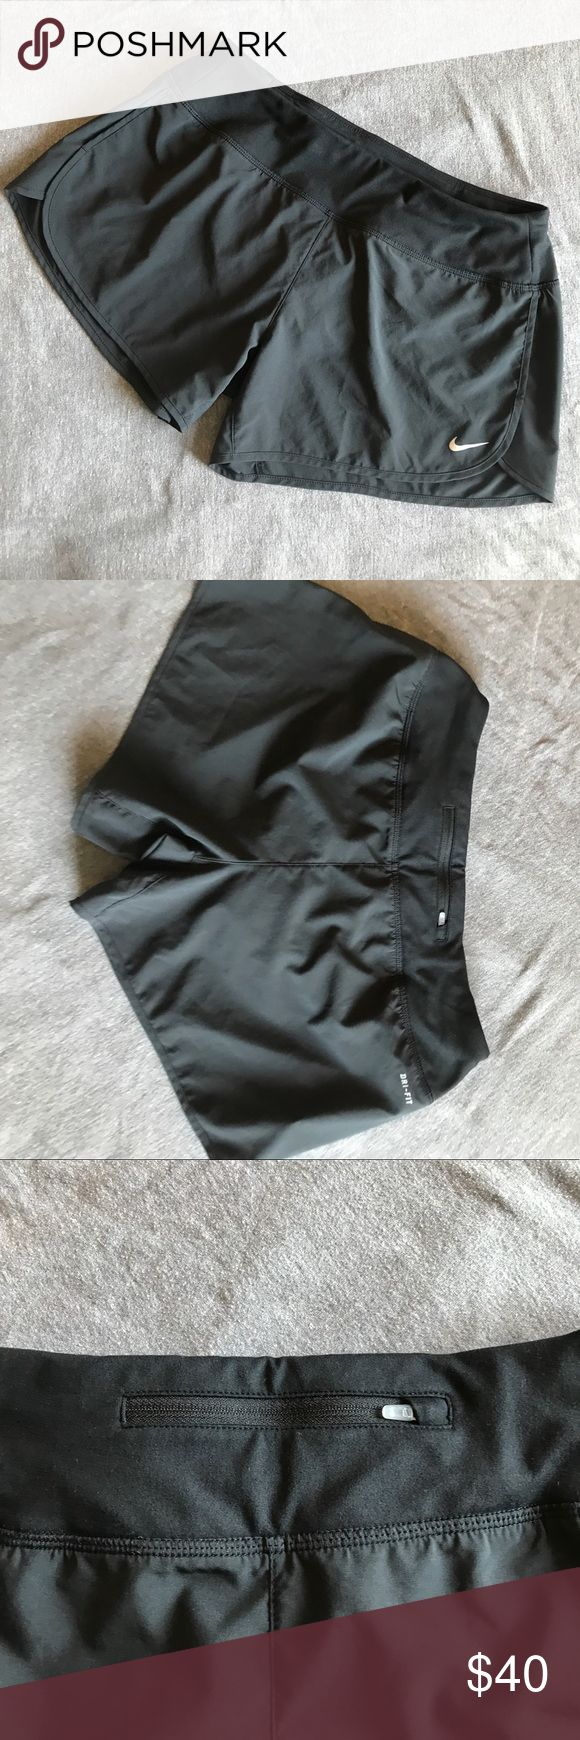 NWOT Dri-Fit Shorts Dry-fit with built in running underwear, thick waist band, draw string, and zipper pouch. Nike Shorts